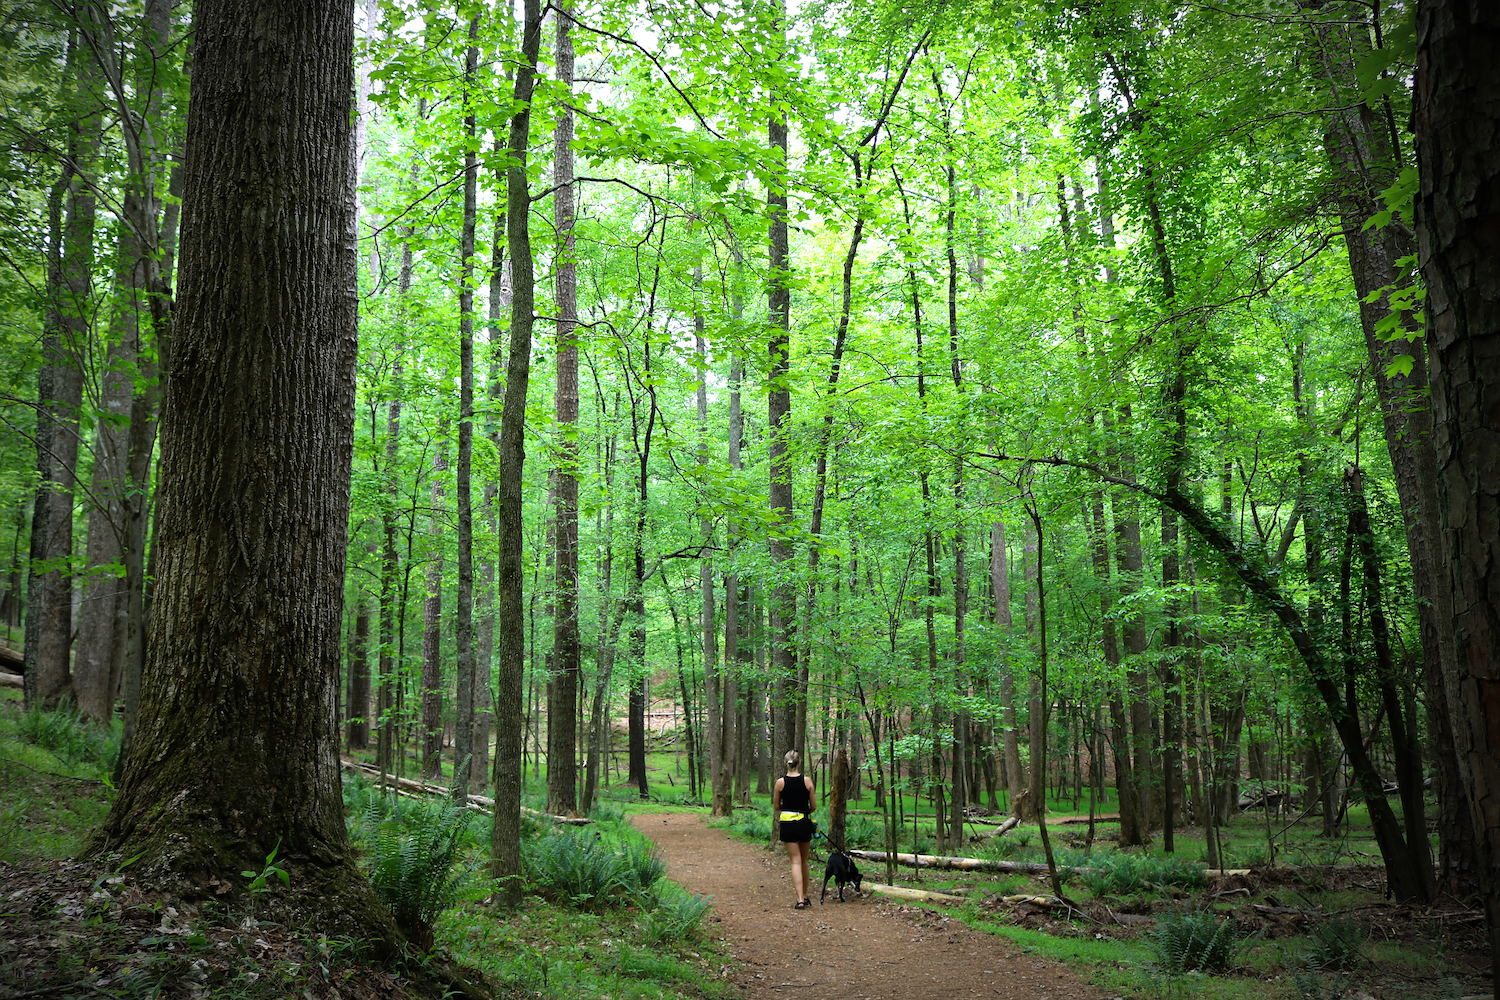 A woman and her dog hiking in the woods.